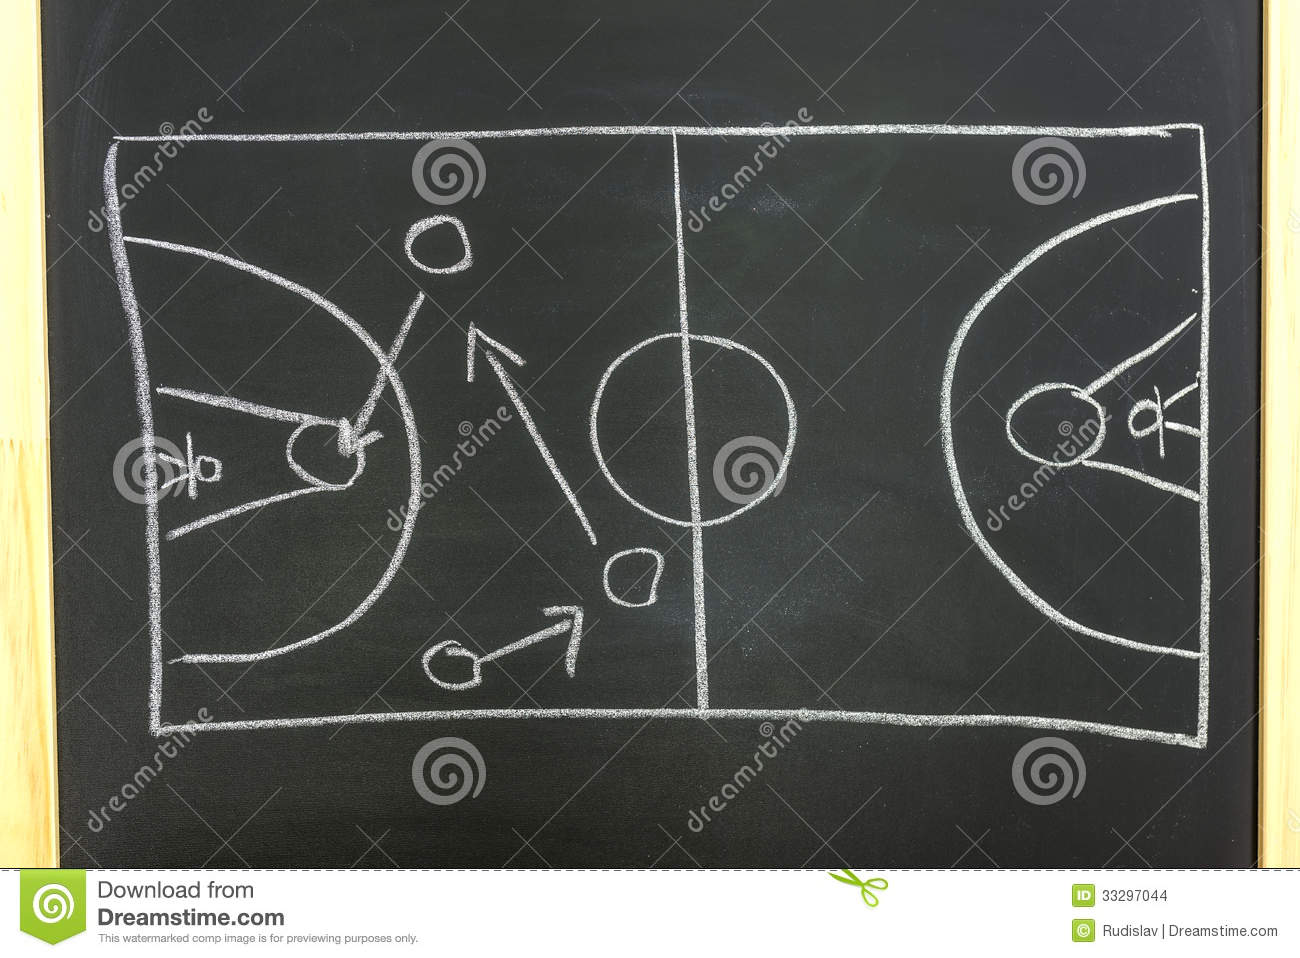 basketball game strategies and tactics